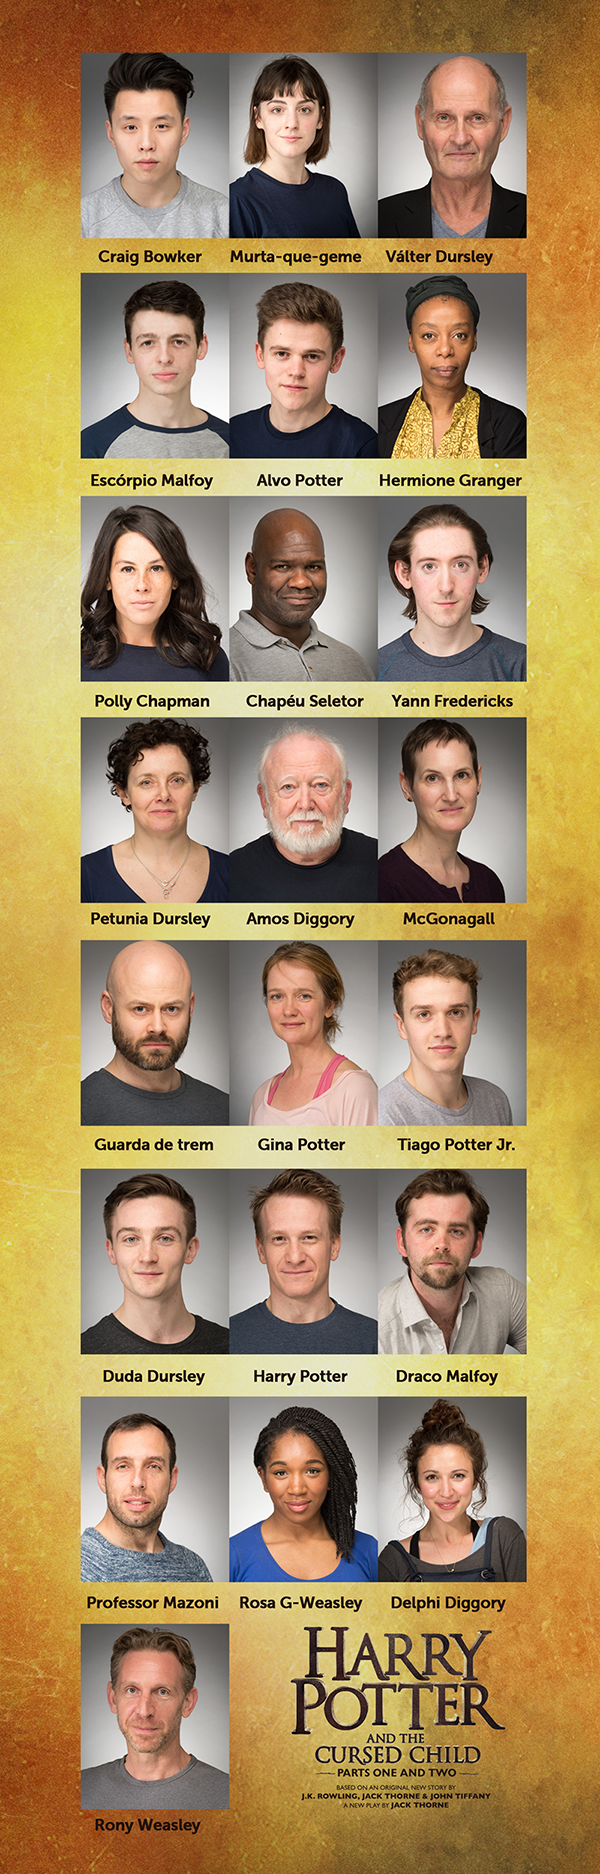 Elenco de Cursed Child.